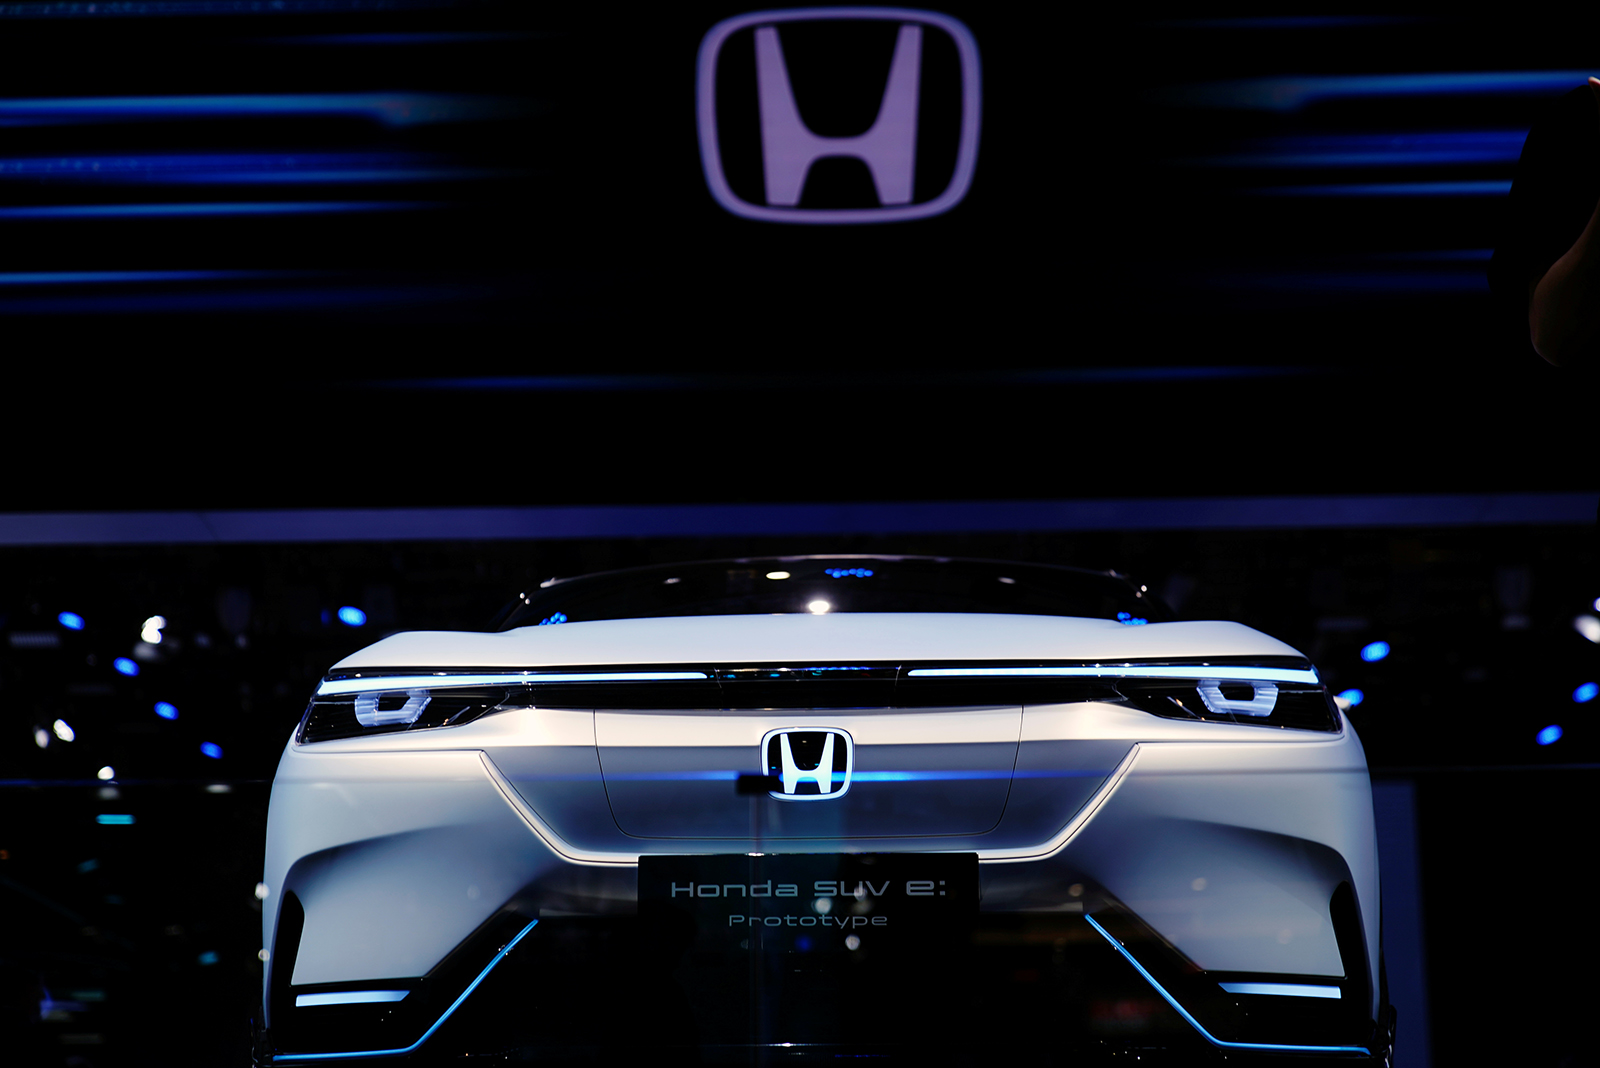 A Honda SUV e:Prototype electric vehicle (EV) is seen displayed during a media day for the Auto Shanghai show in Shanghai, China April 20, 2021. REUTERS/Aly Song - RC2IZM9QHXO4